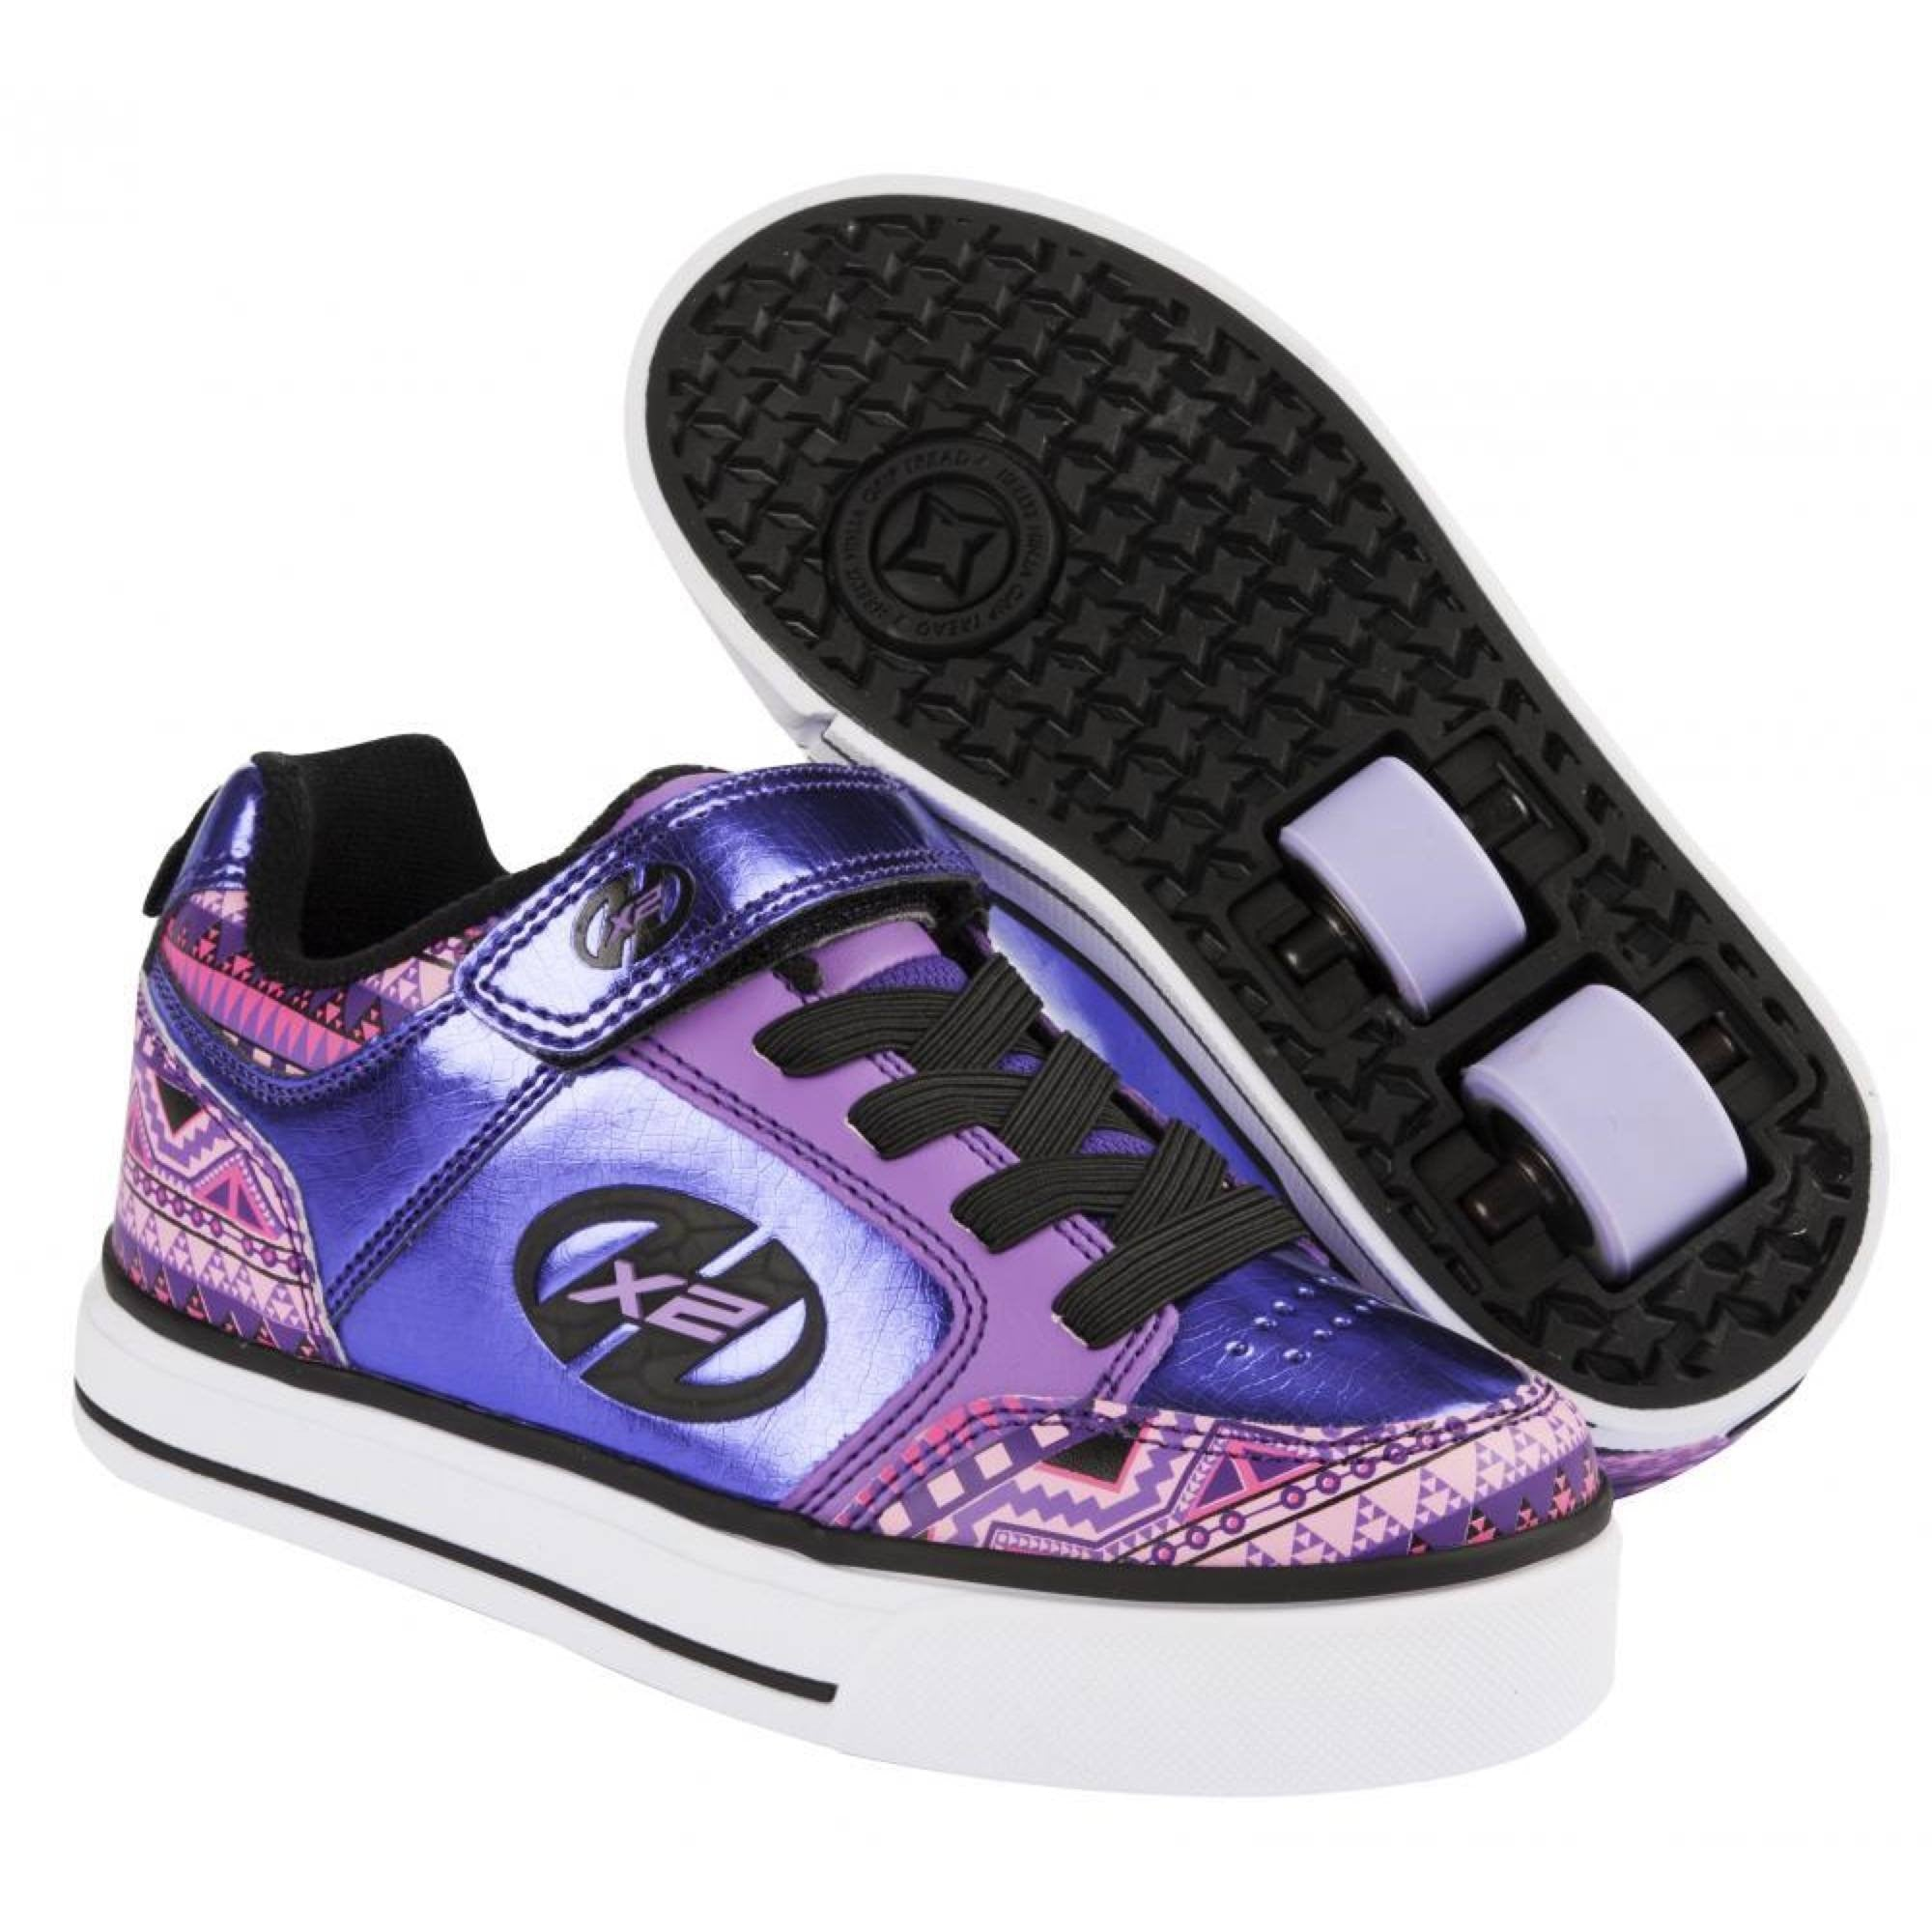 heelys x2 thunder purple multi print two wheel heelys ebay. Black Bedroom Furniture Sets. Home Design Ideas